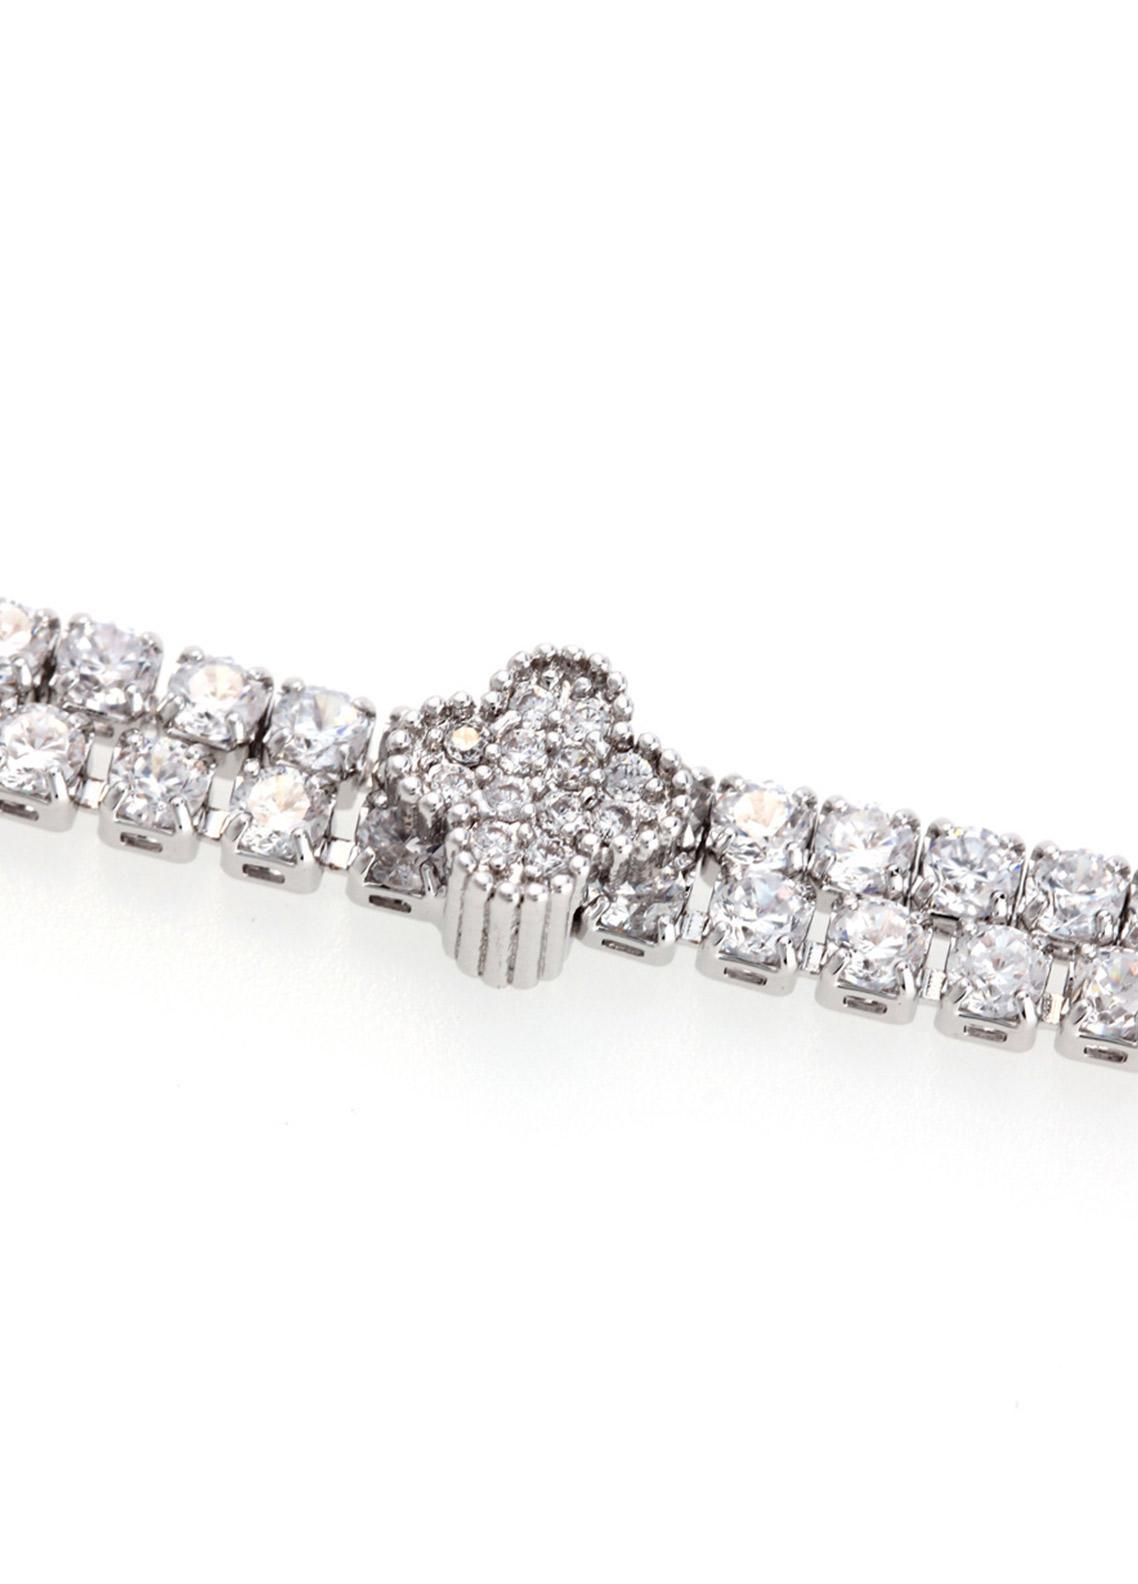 Anna Grace London Silver Crystal Sparkling Bracelet AGB0062 - Ladies Jewellery